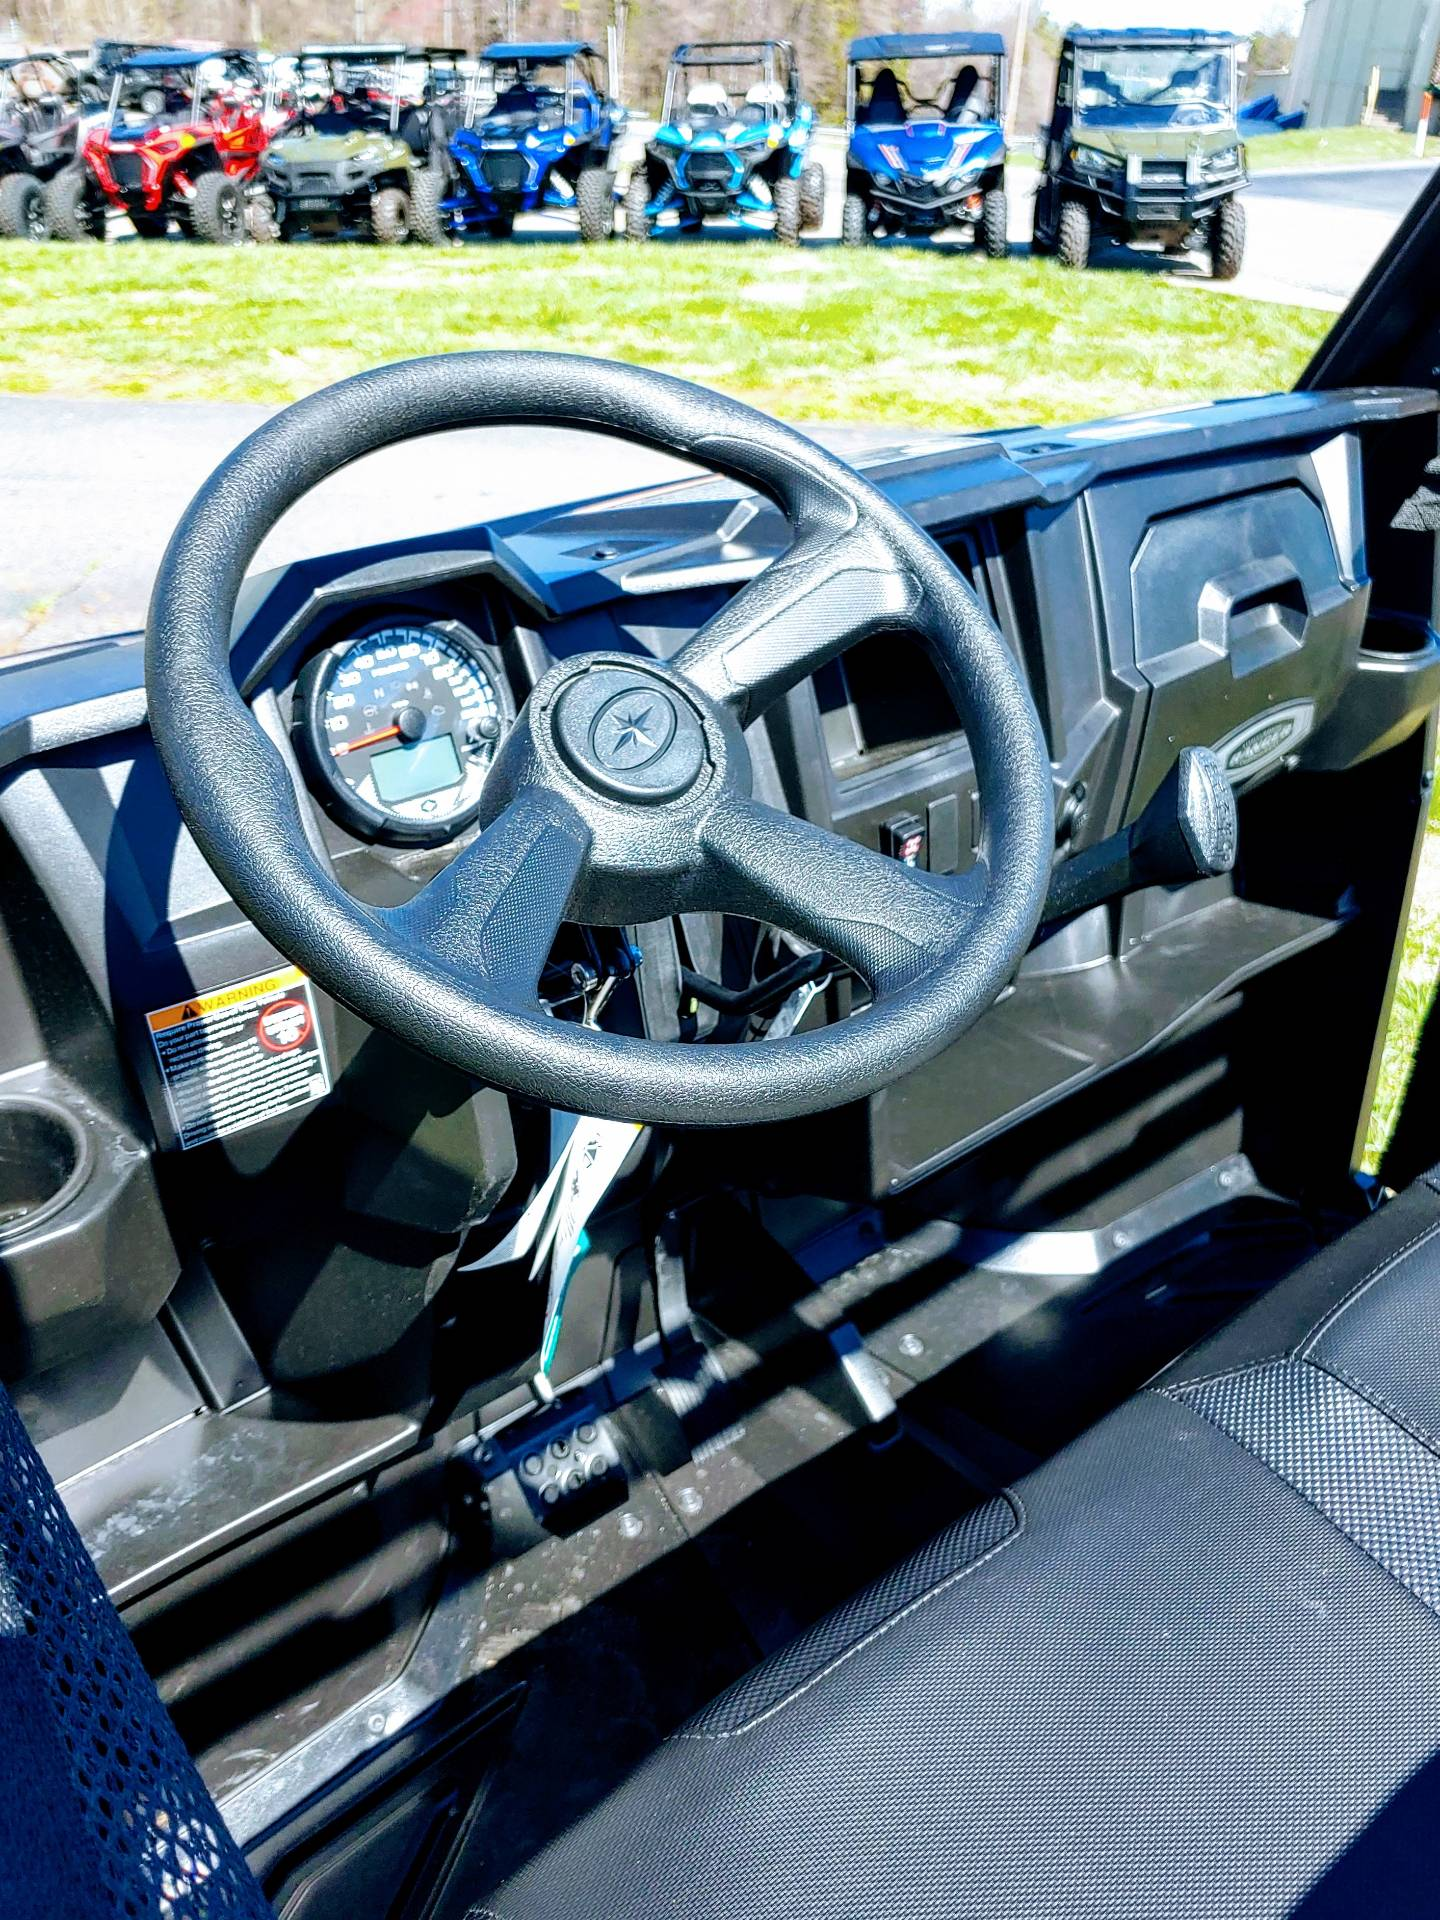 2019 Polaris Ranger 570 EPS in Statesville, North Carolina - Photo 8